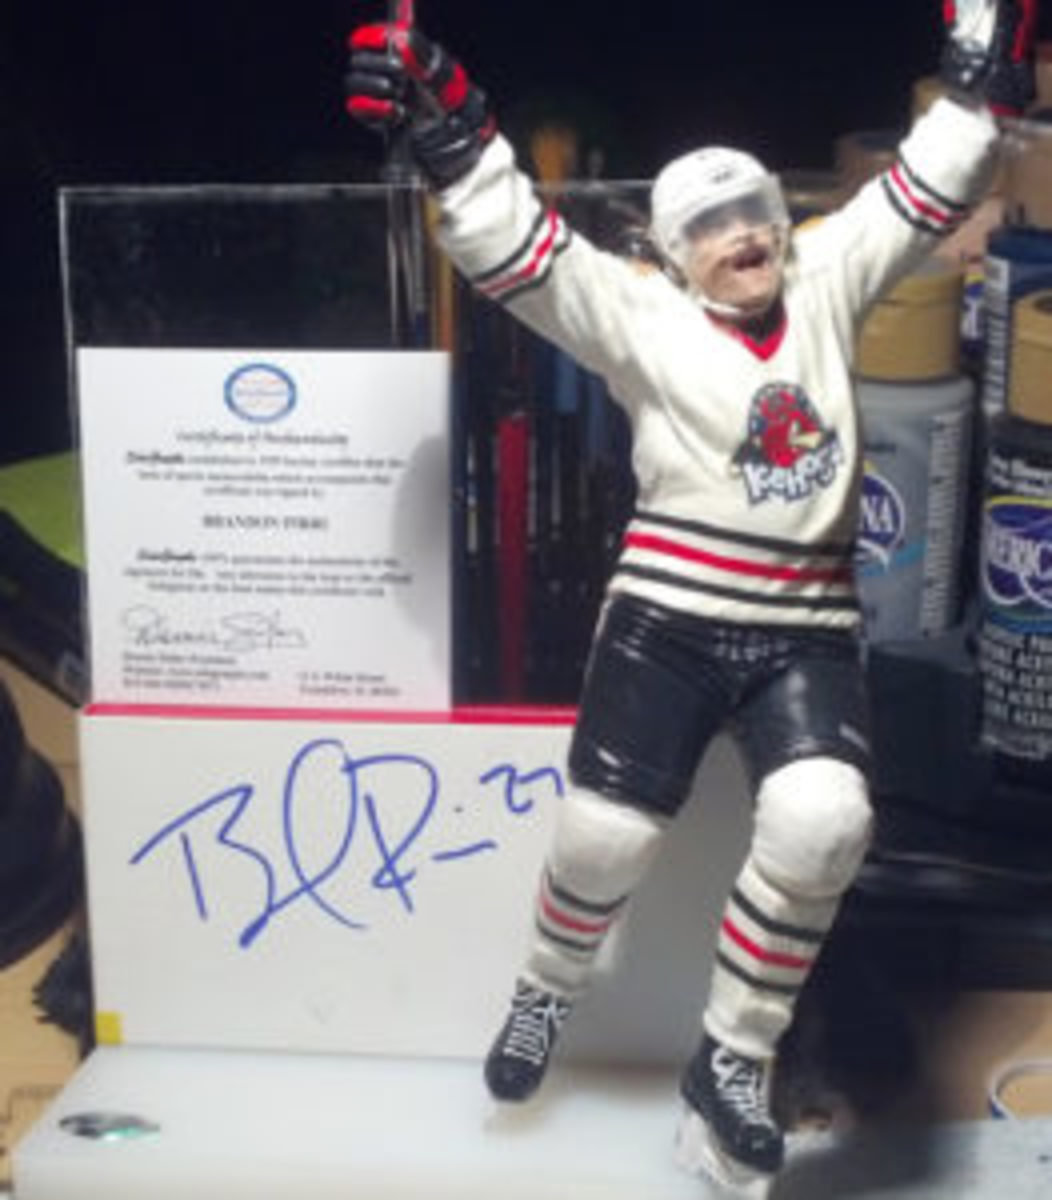 A custom hockey figure created by Alan Ithal that is autographed by the player. (Photos courtesy Alan Ithal)